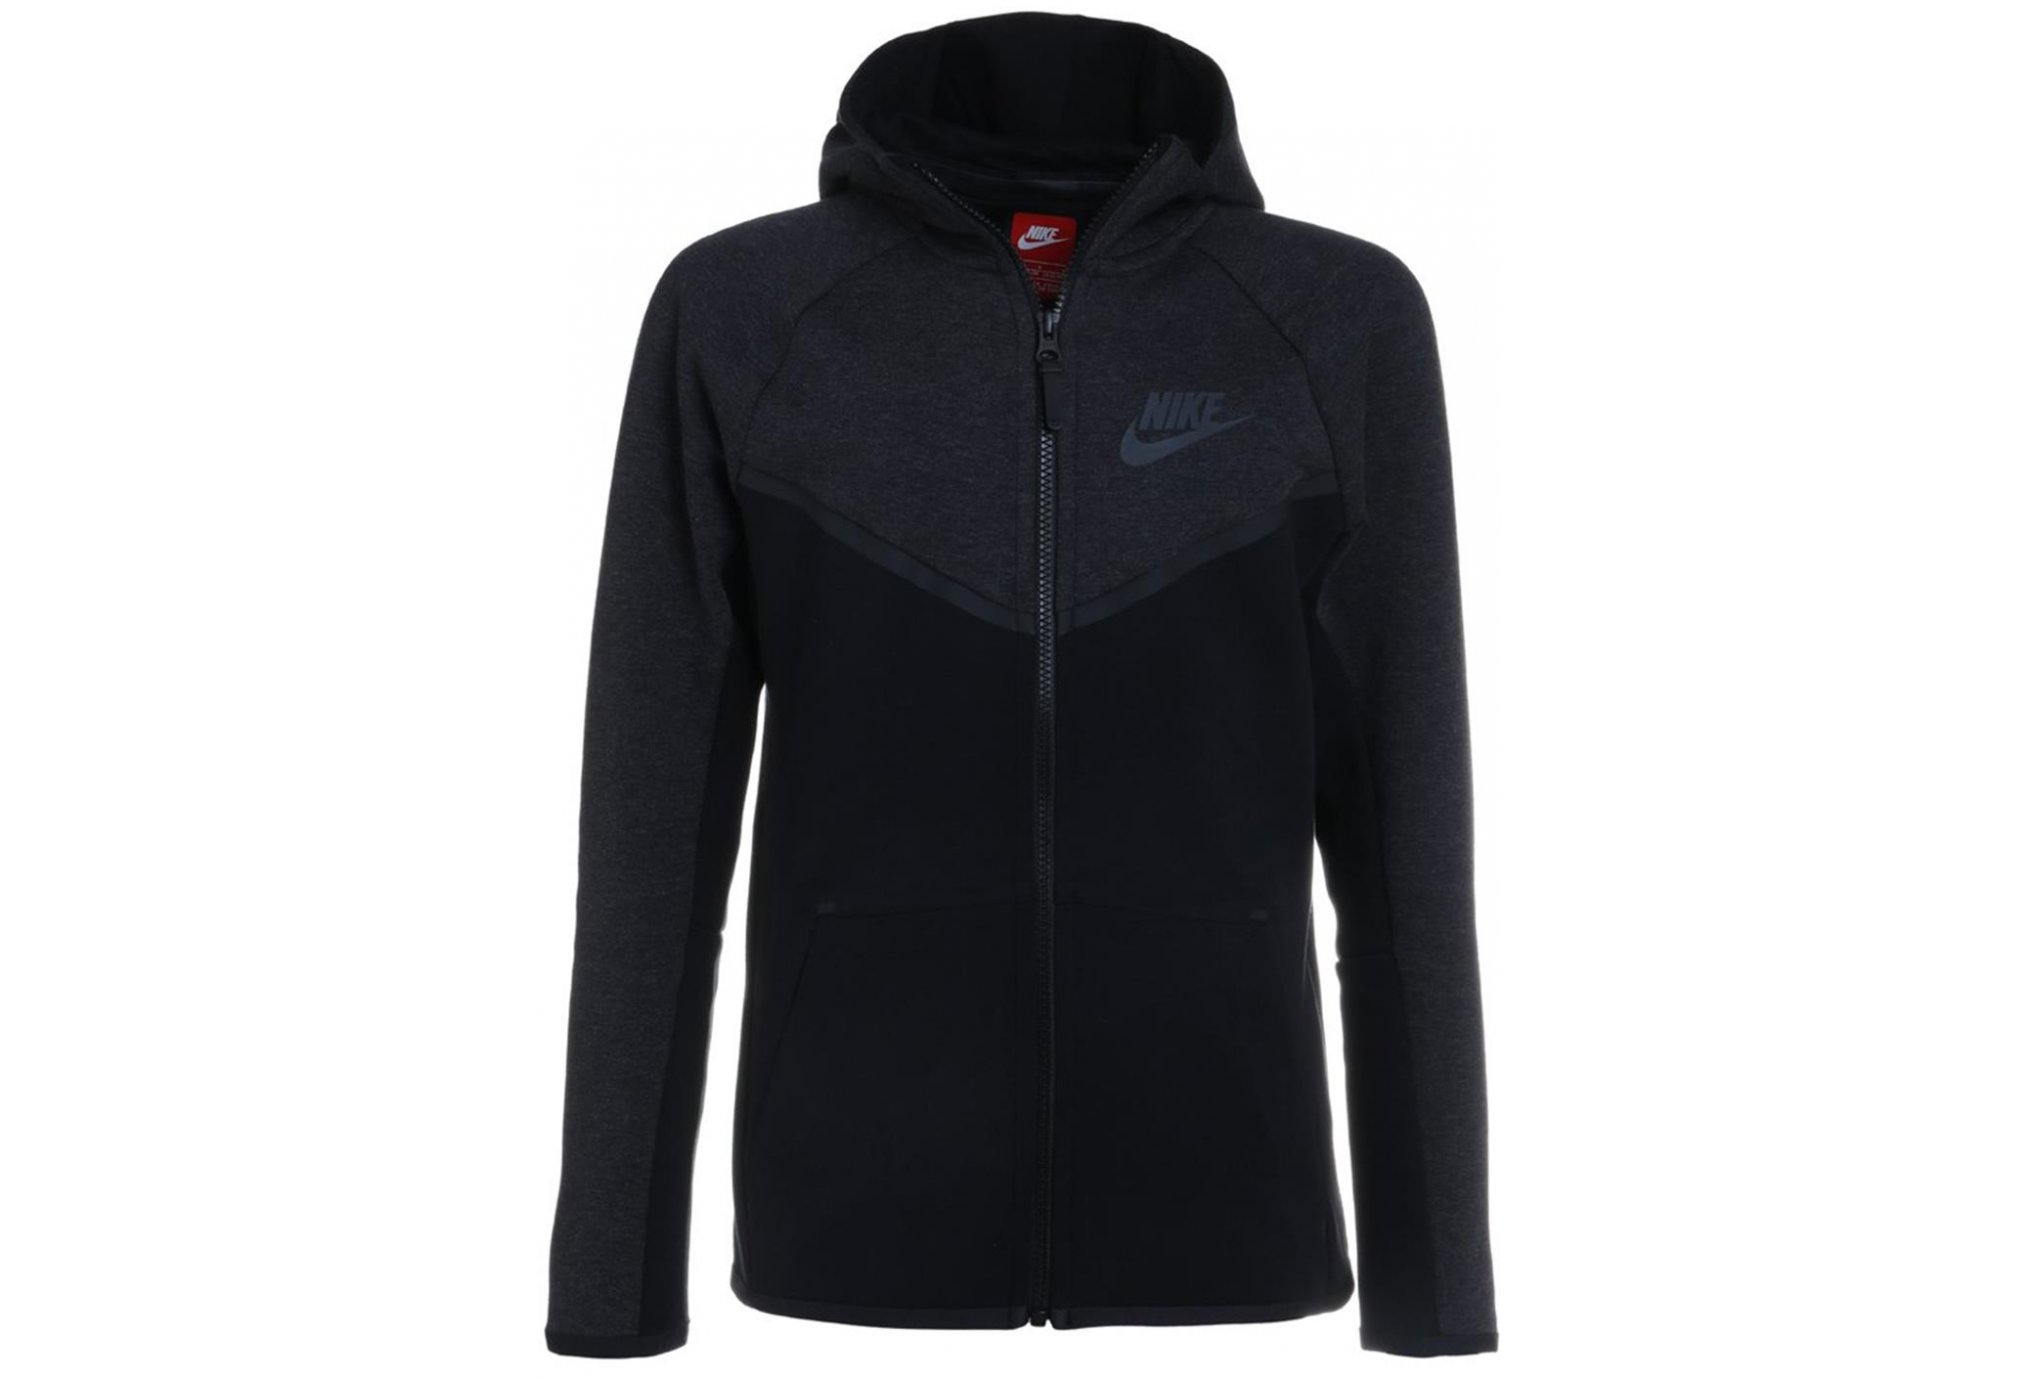 Nike Tech Fleece Windrunner Junior Diététique Vêtements homme